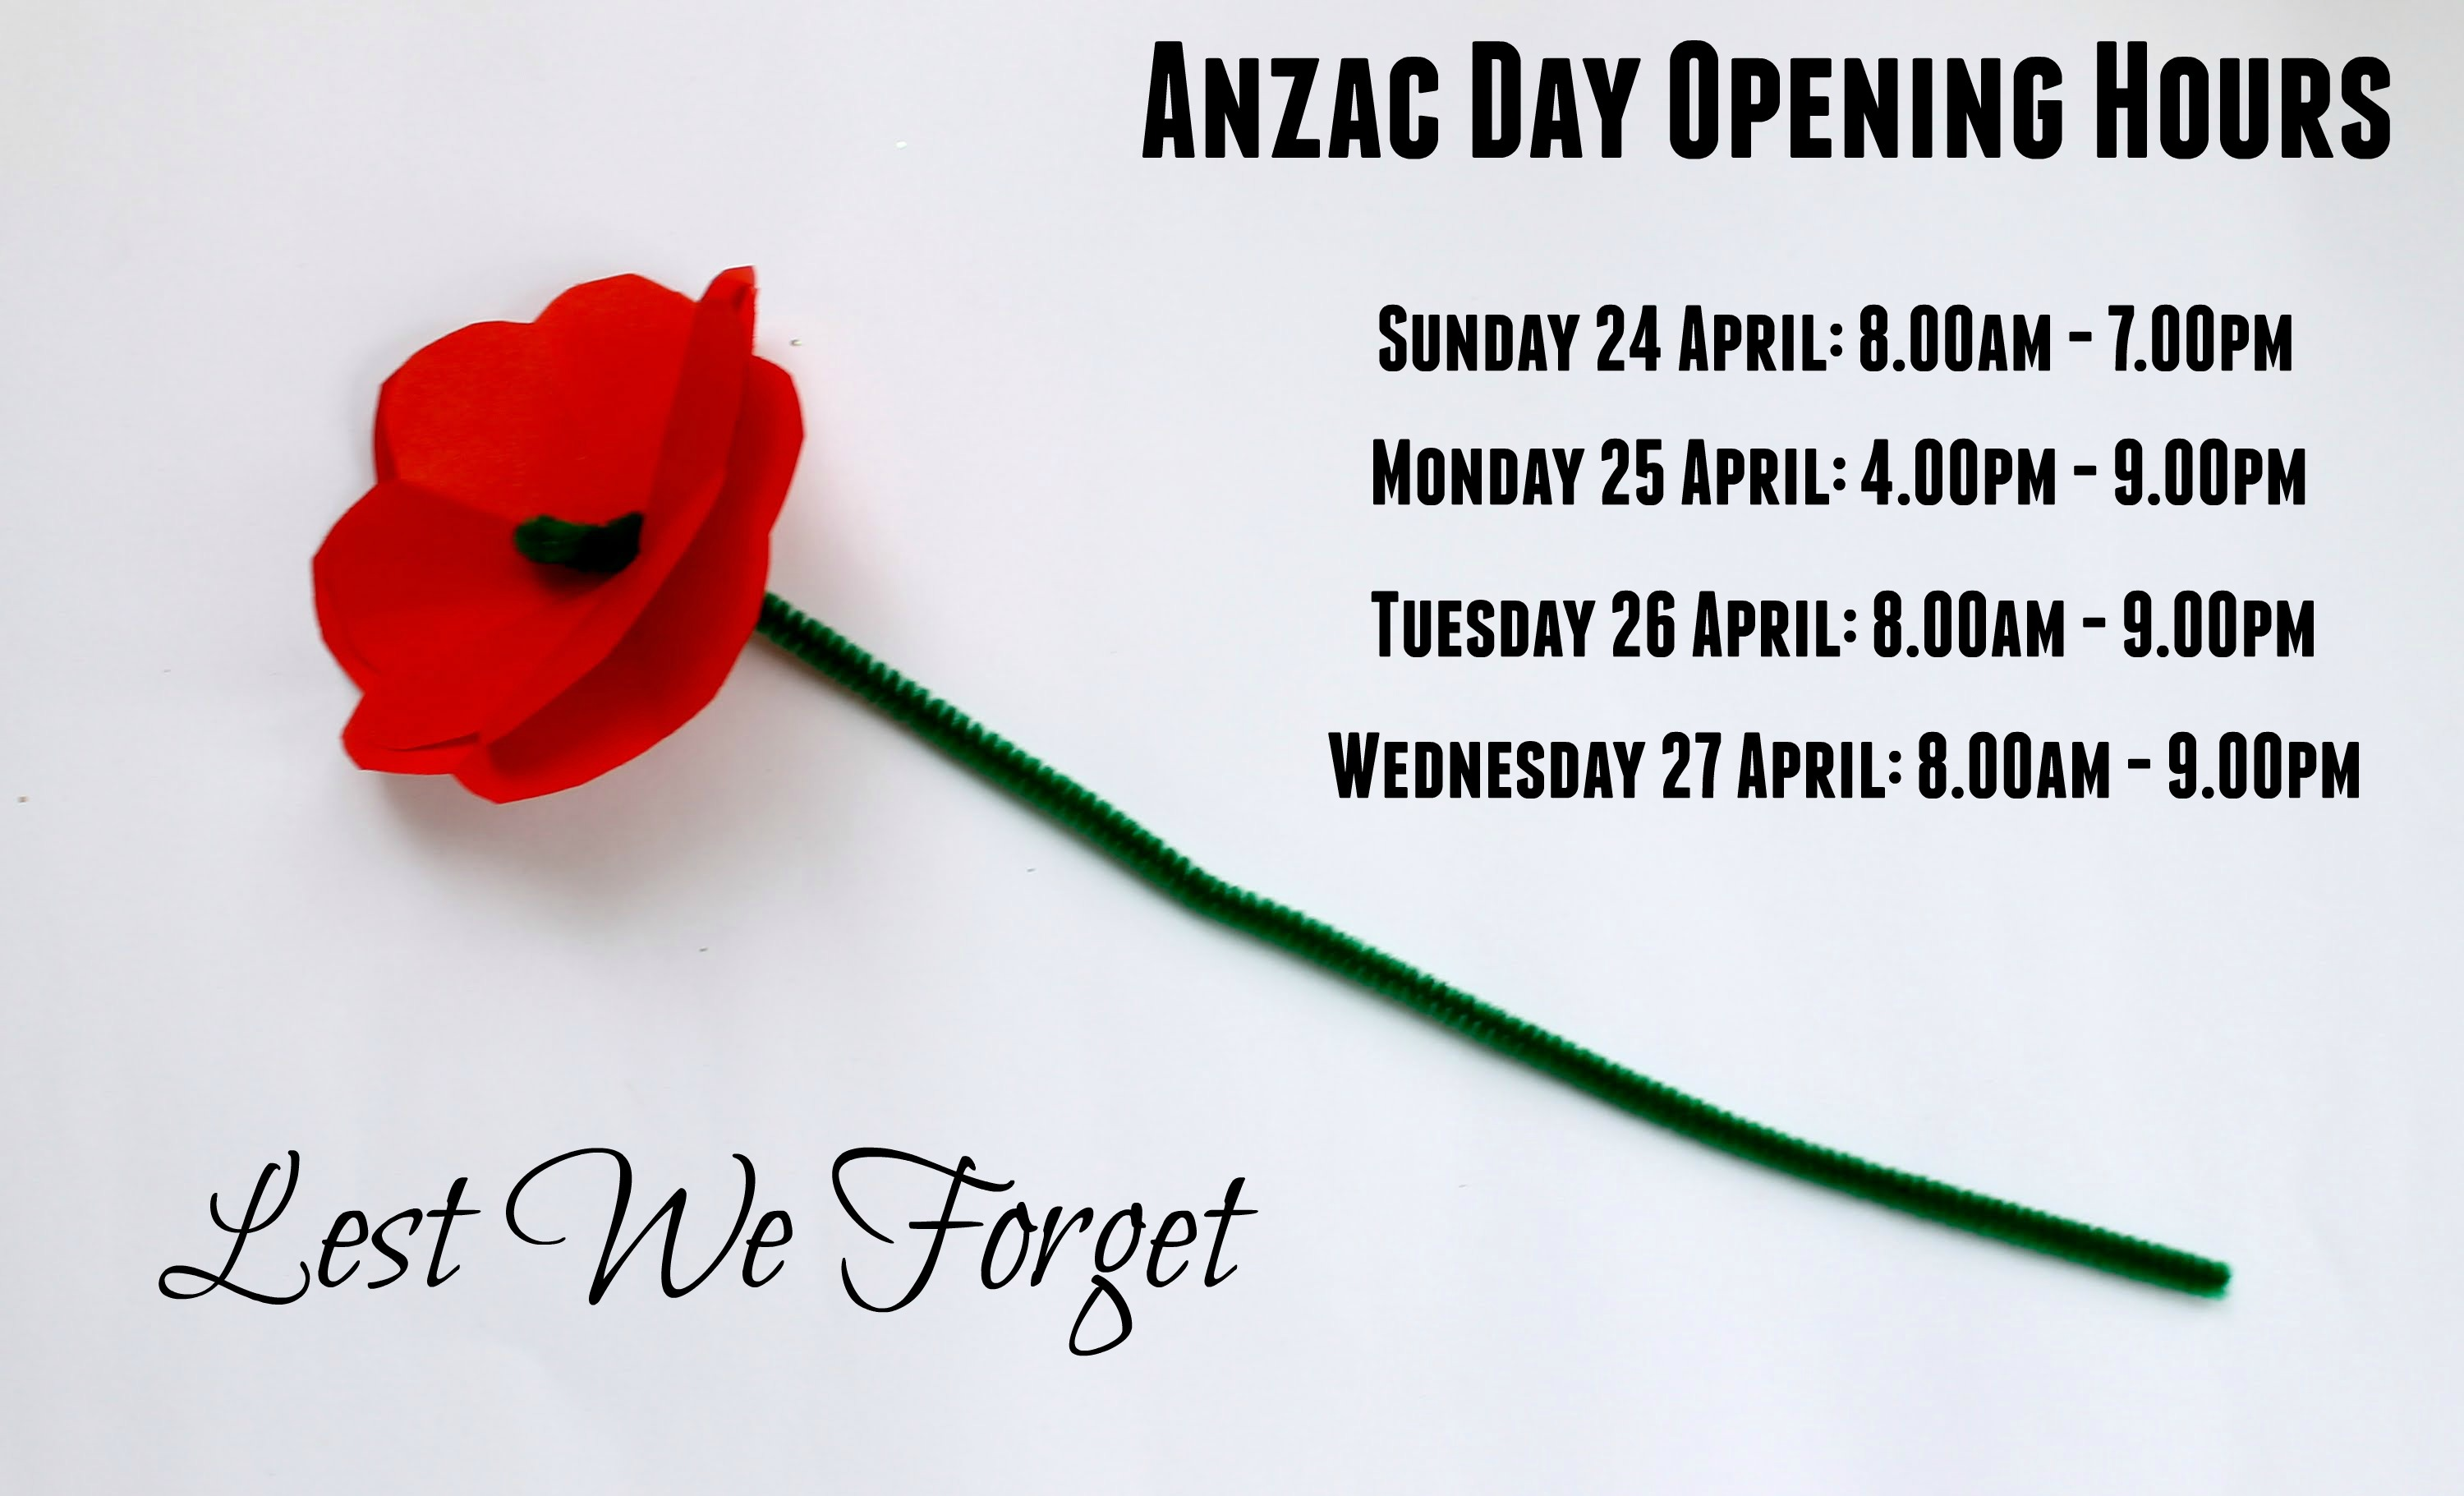 Anzac Day Opening Hours 2016